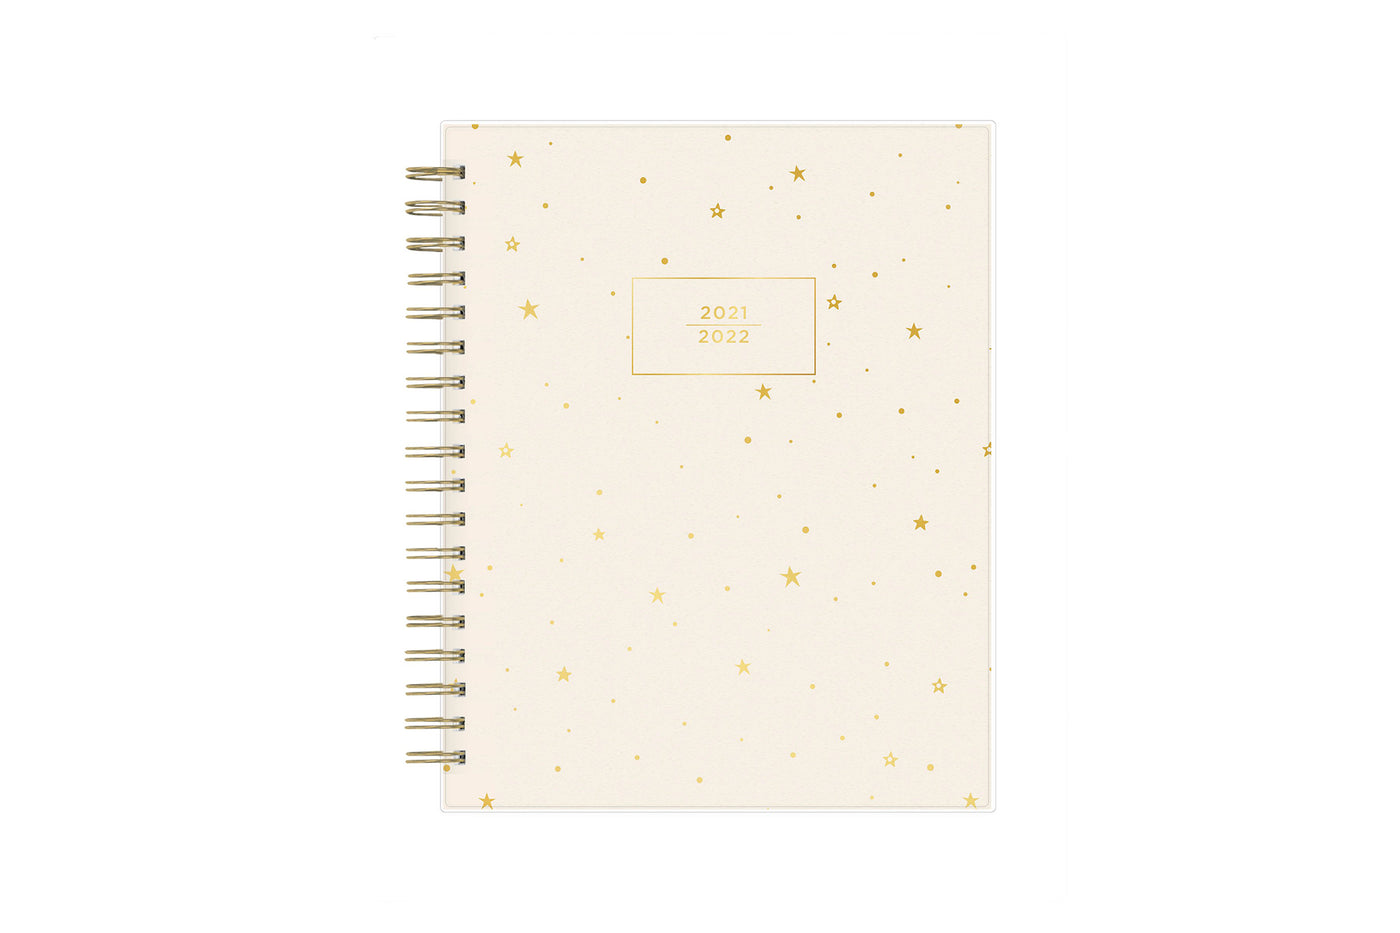 2021-2022 daily and monthly agenda planner for the academic school from Assistant by Ashley G for Blue Sky with gold star pattern and beige background 8x10